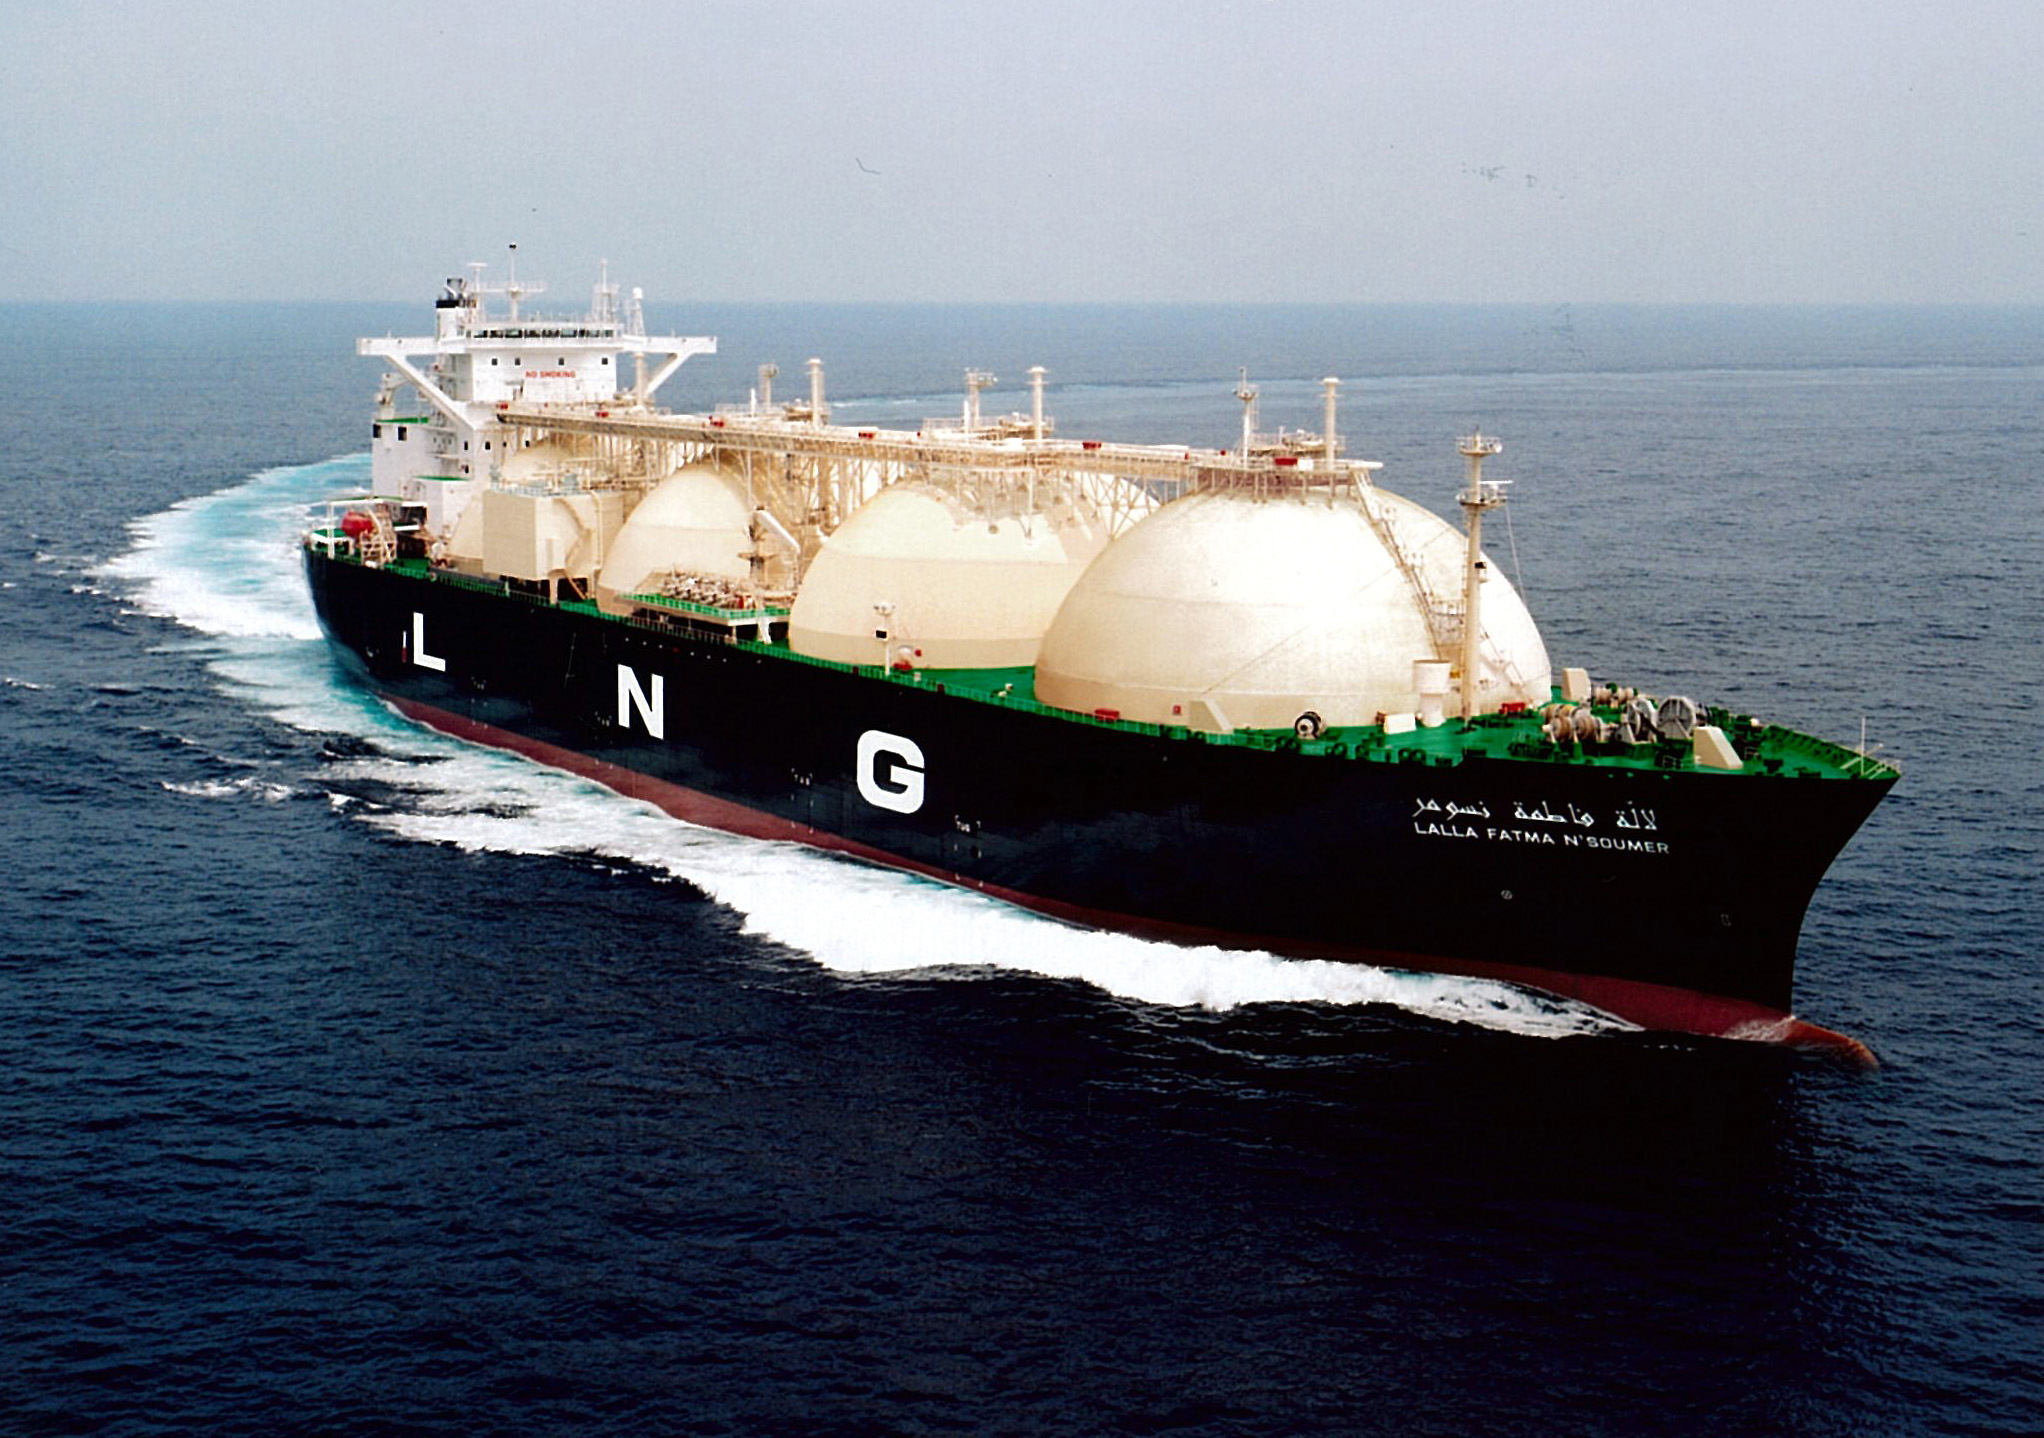 Damen-Shiprepair-Brest-Scores-Second-LNG-Repair-Commission.jpg